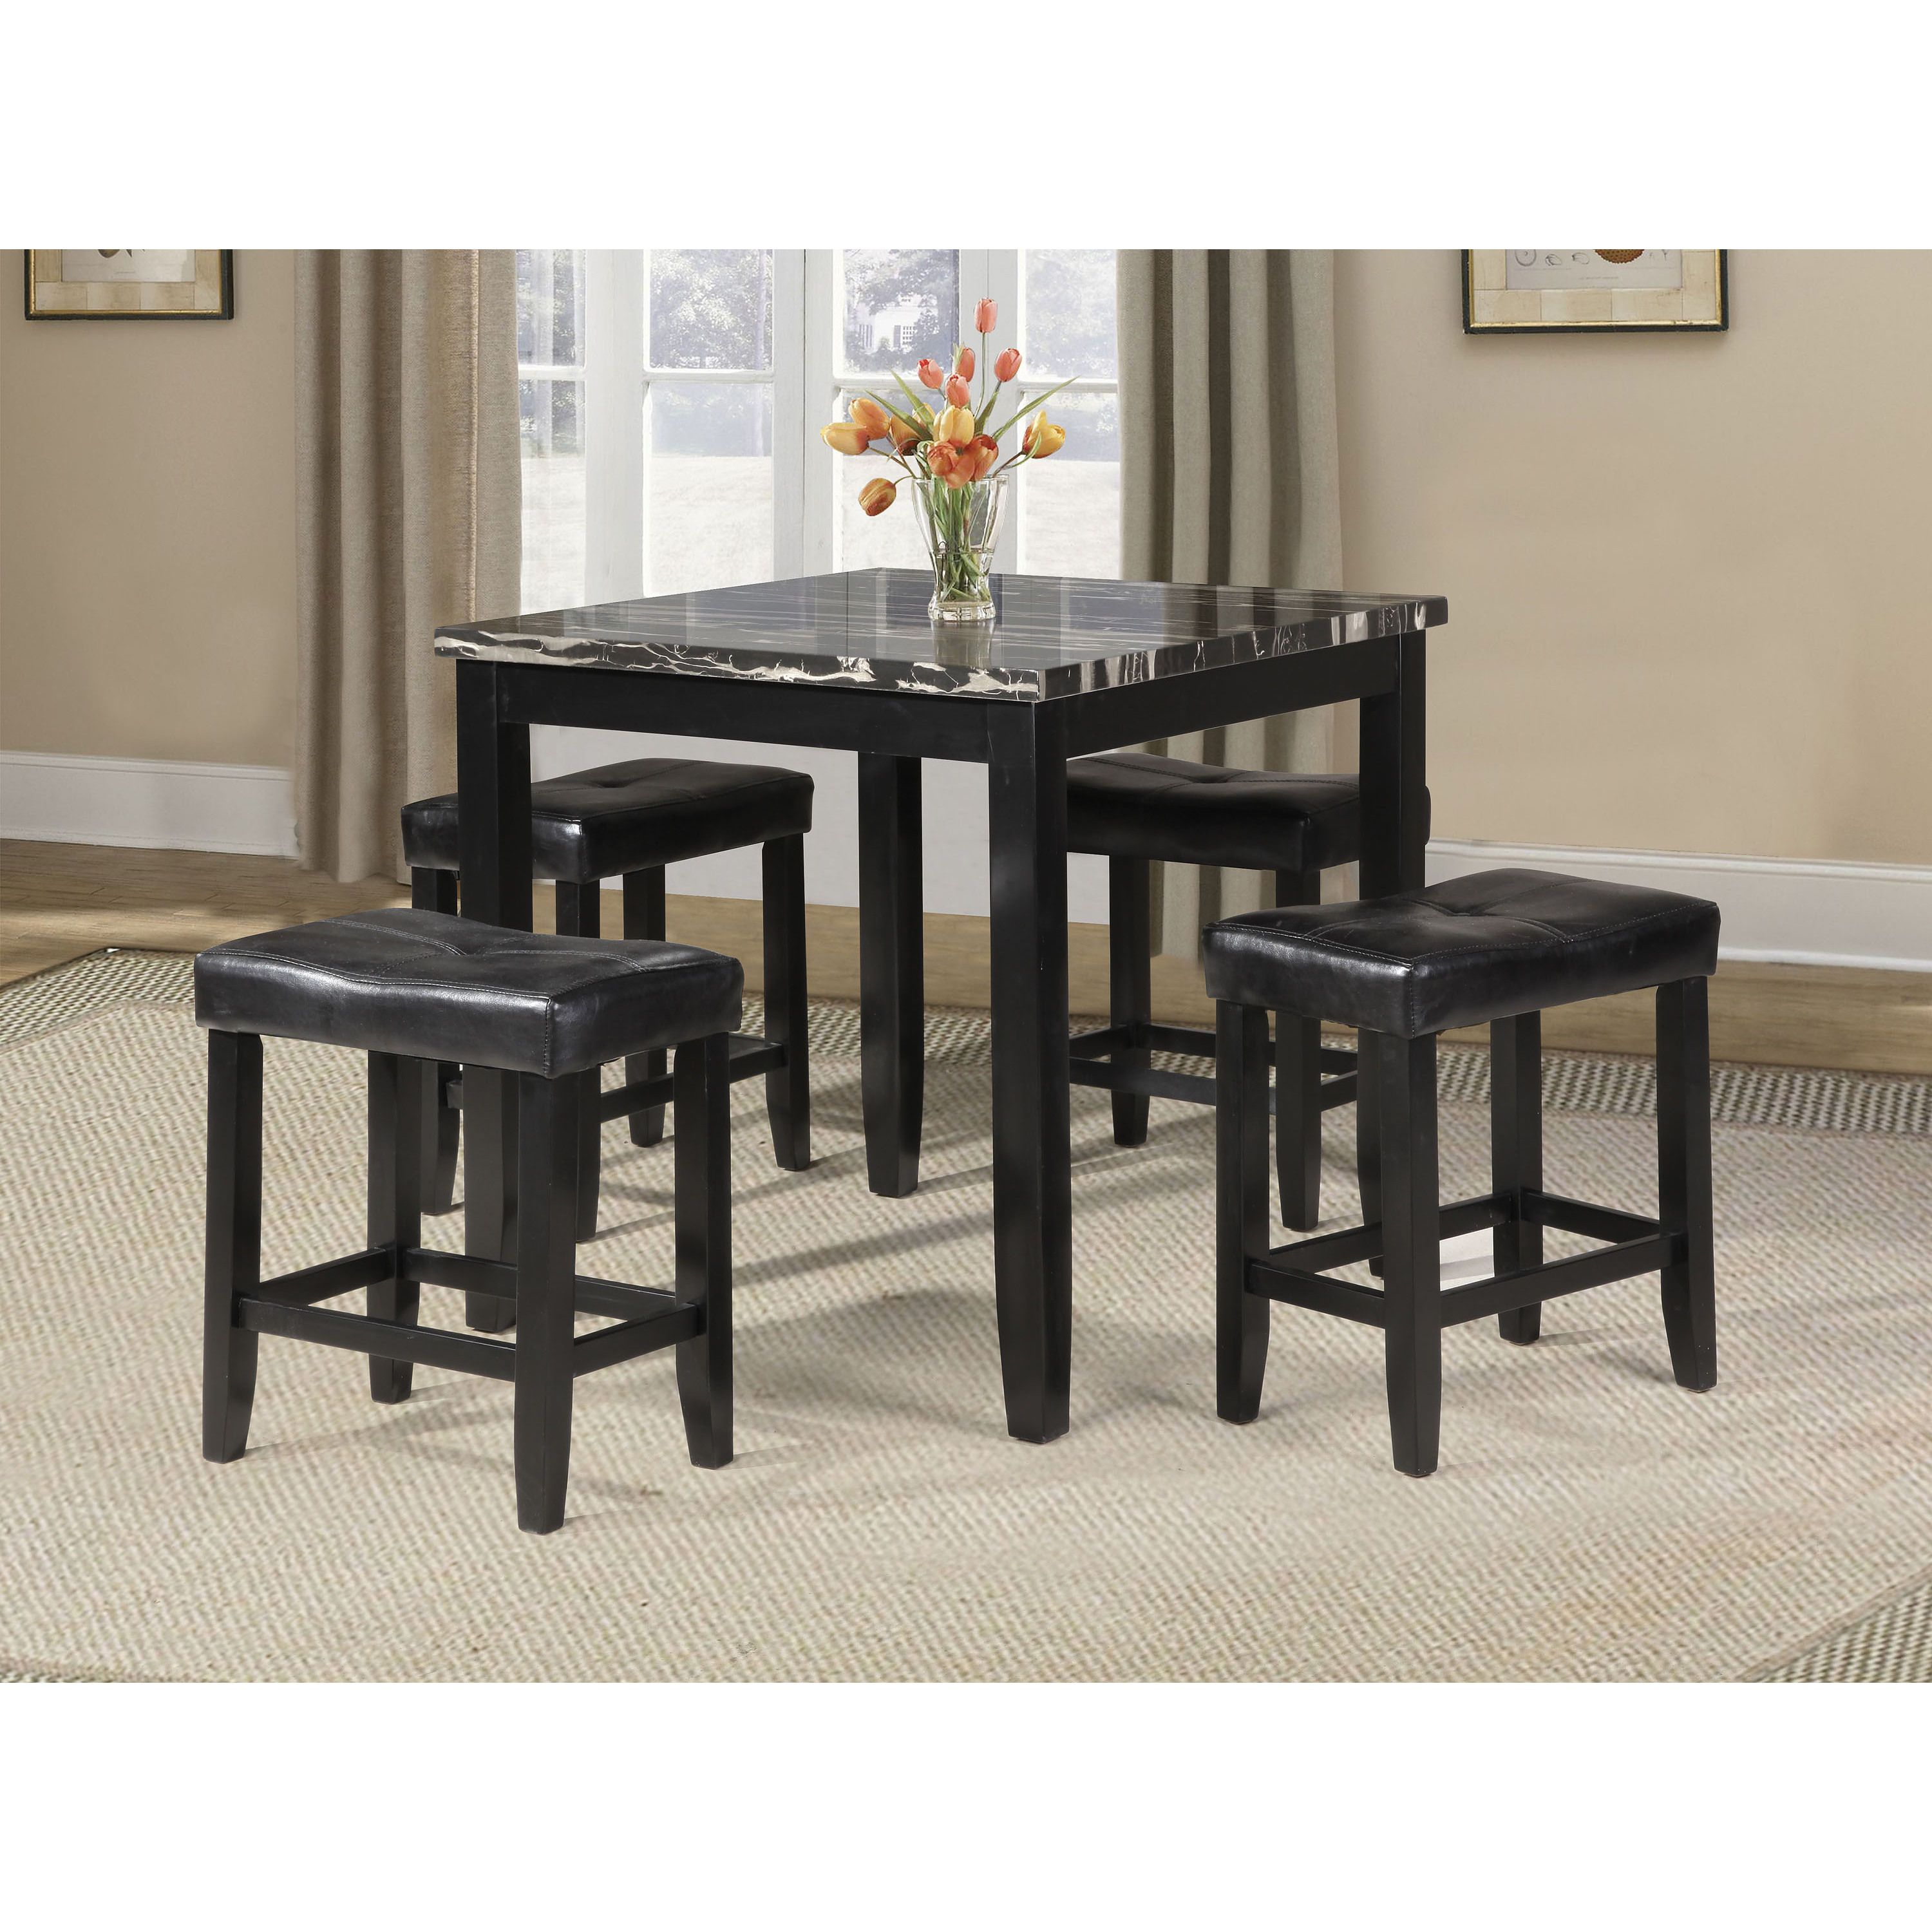 Blythe 5 Piece Pack Counter Height Set Table And Stools (Rolle 5Pc In Most Current Denzel 5 Piece Counter Height Breakfast Nook Dining Sets (Image 4 of 20)